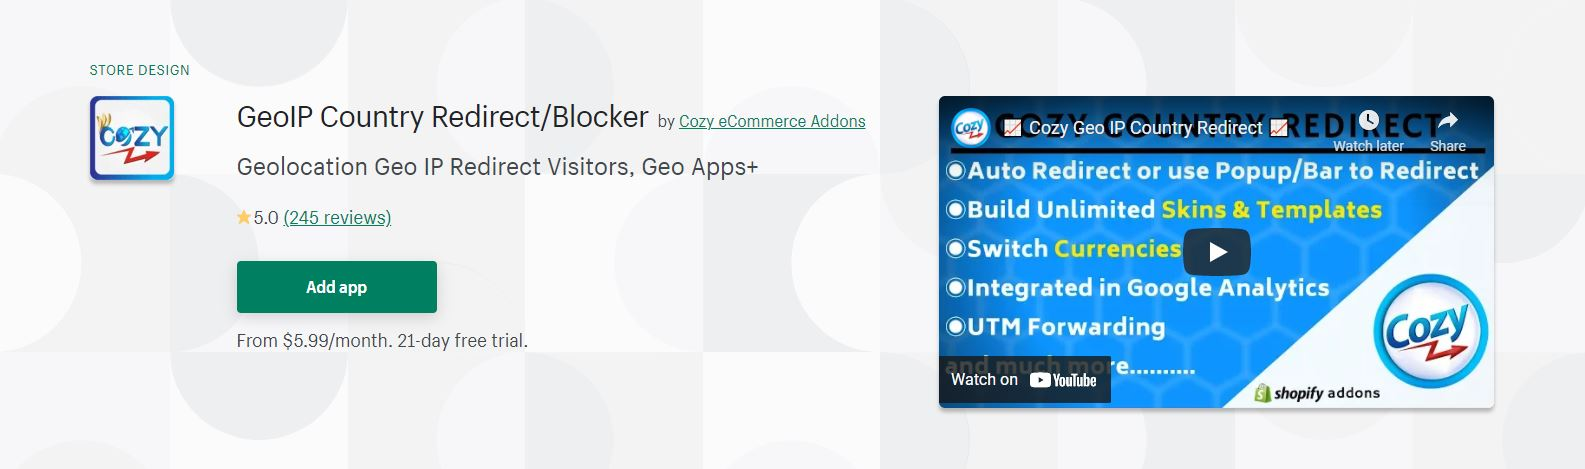 GeoIP Country Redirect/Blocker